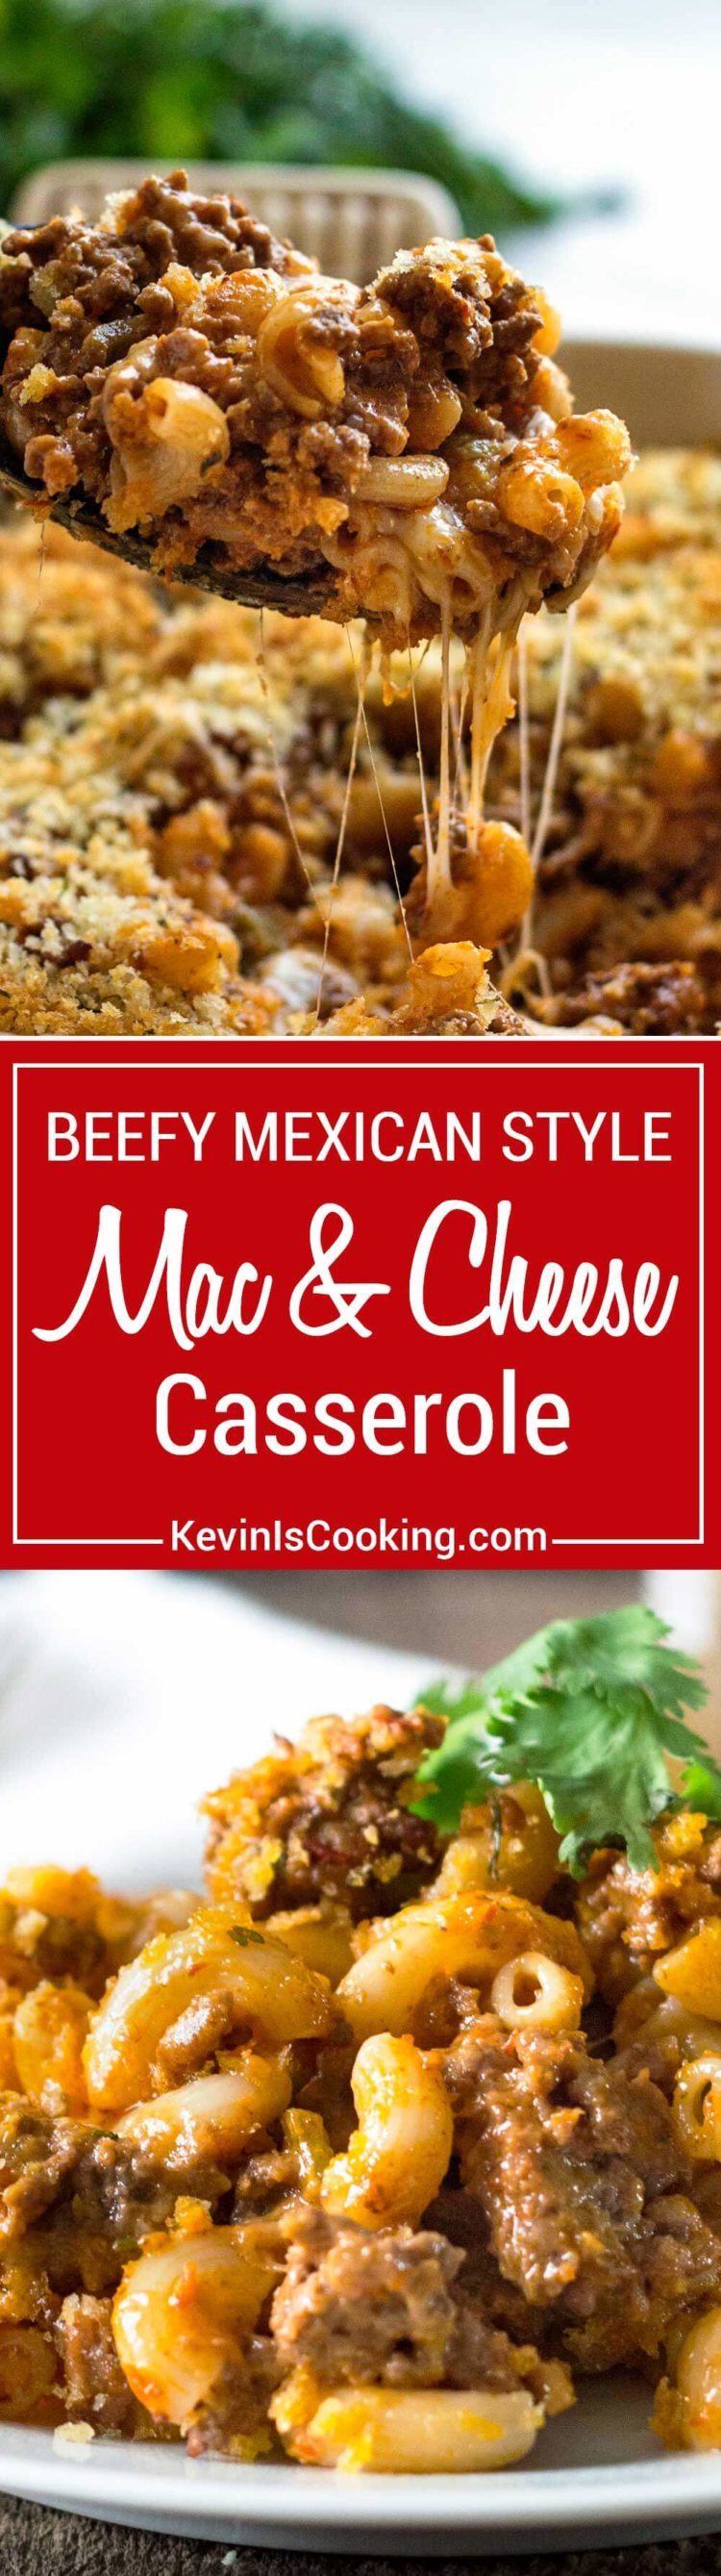 This stepped up Beefy Mac and Cheese Casserole goes a step further with a Mexican salsa addition to ground beef, extra cheese and crunchy breadcrumb topping!